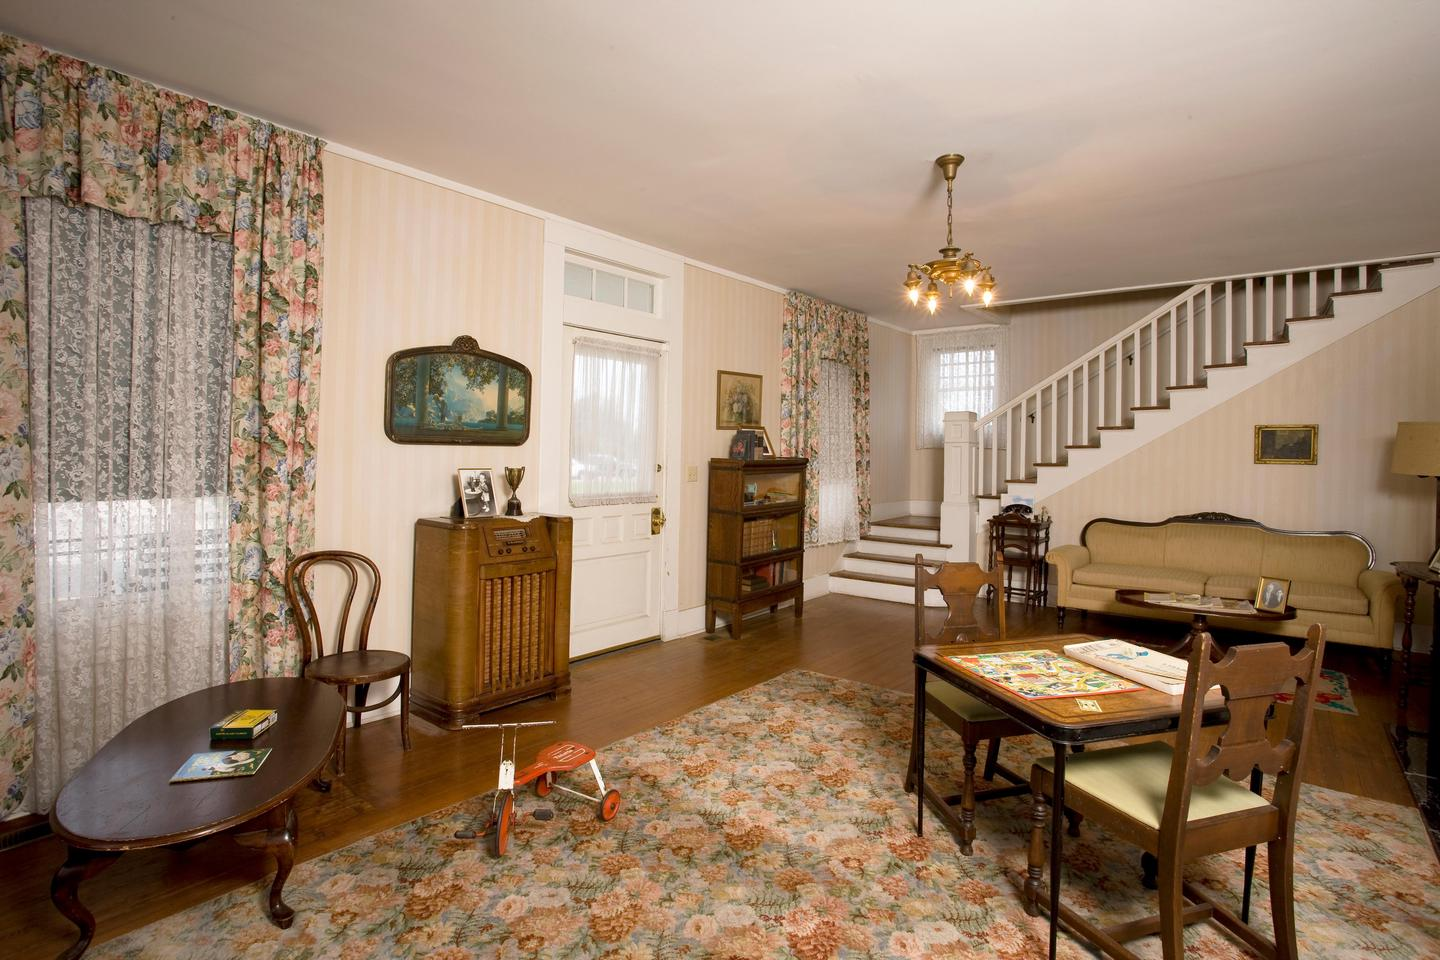 The formal living room of the Clinton Birthplace Home